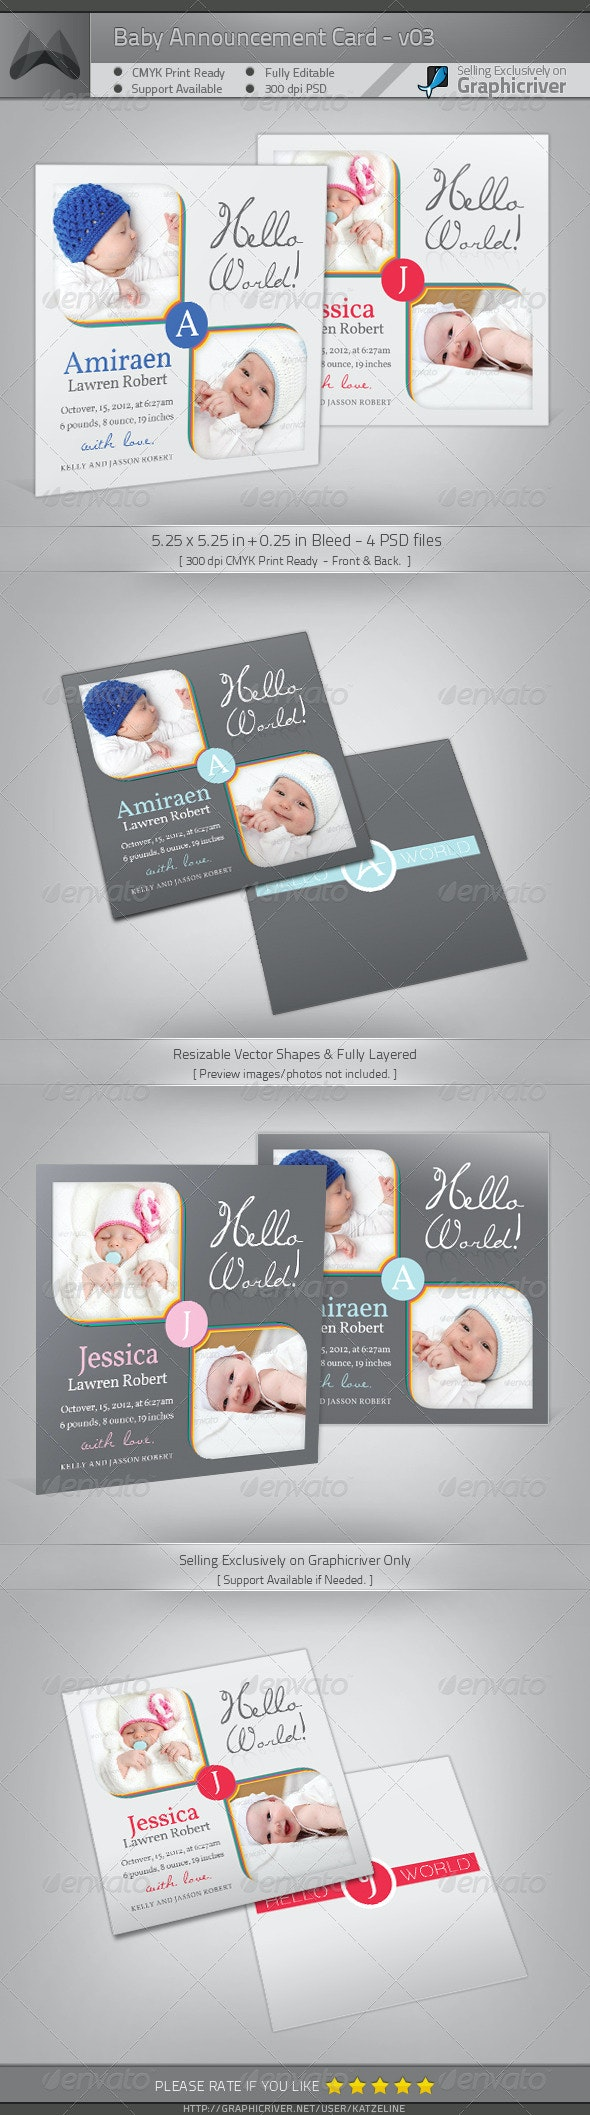 Boy / Girl Baby Announcement Card 03 - Family Cards & Invites